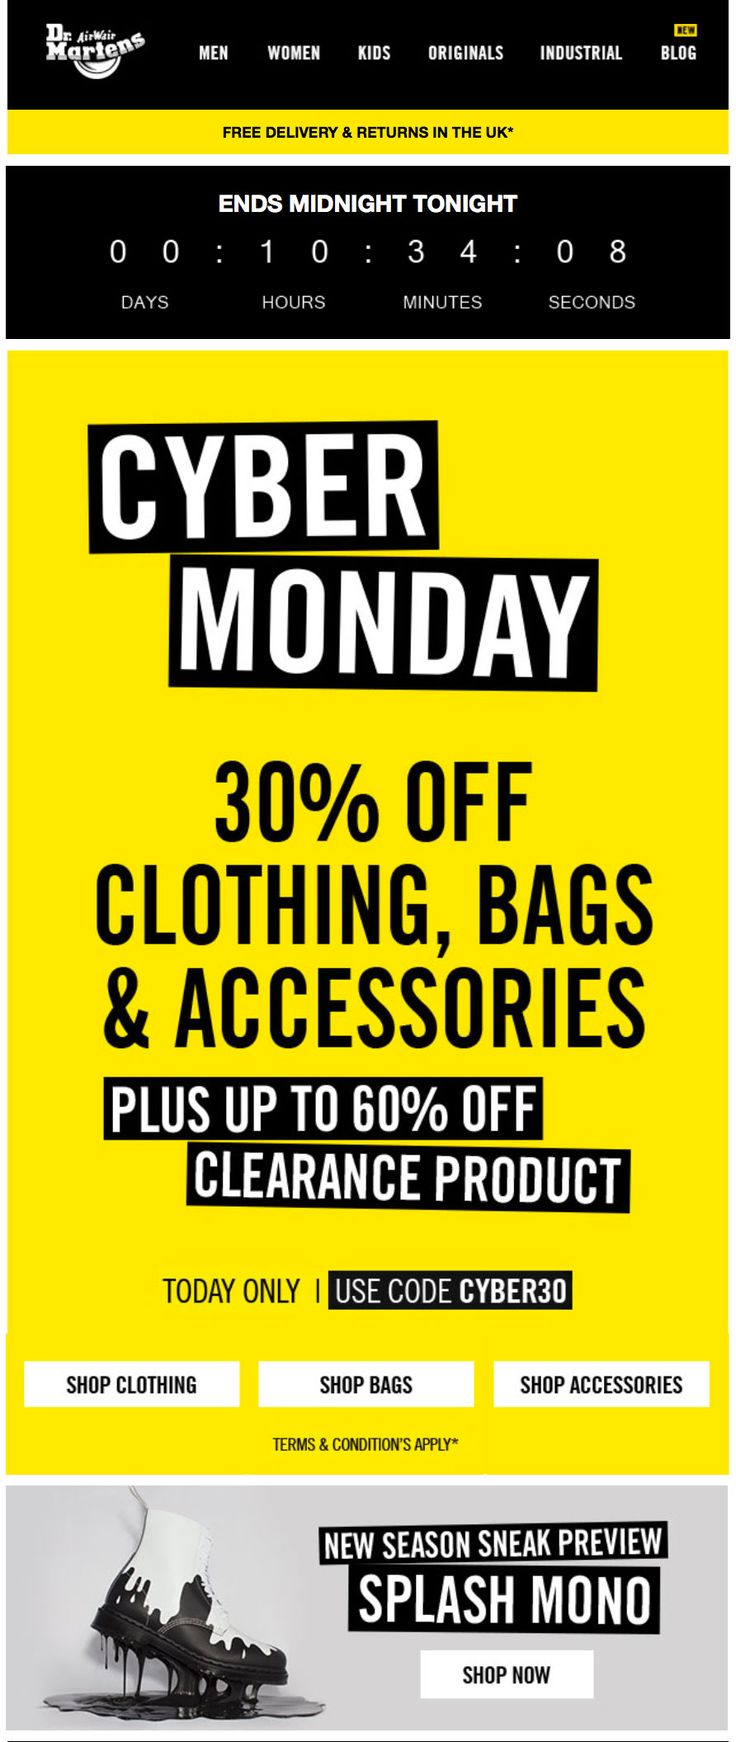 Black Friday email marketing by Dr. Martens